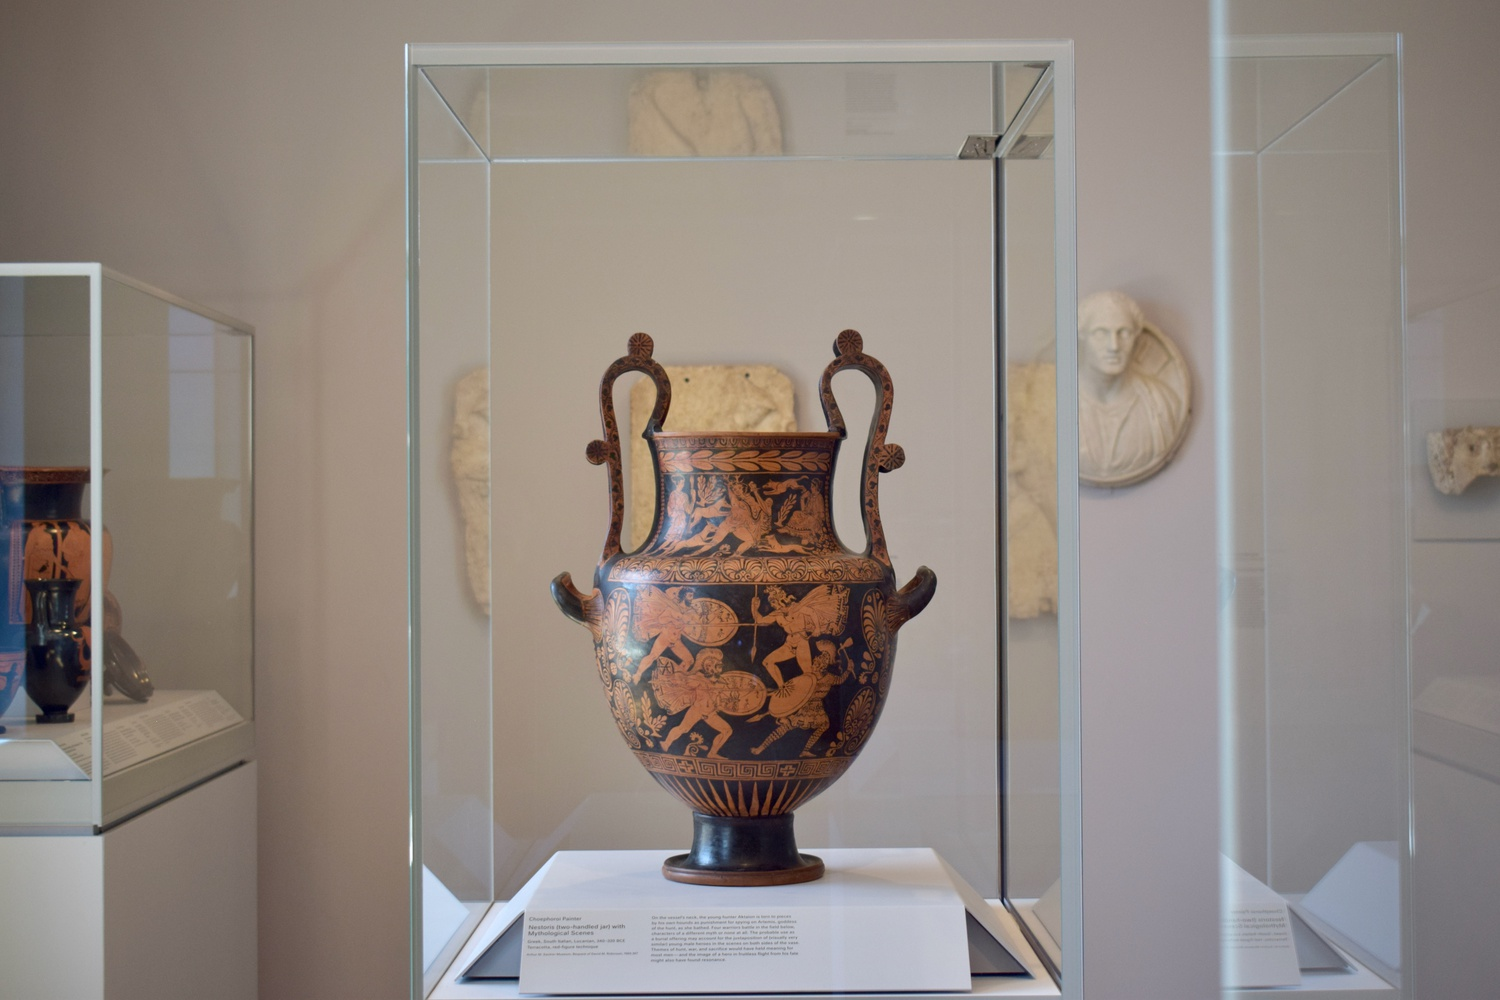 The Harvard Art Museum hosted a Sexy Vases Tour for Parents on March 15.